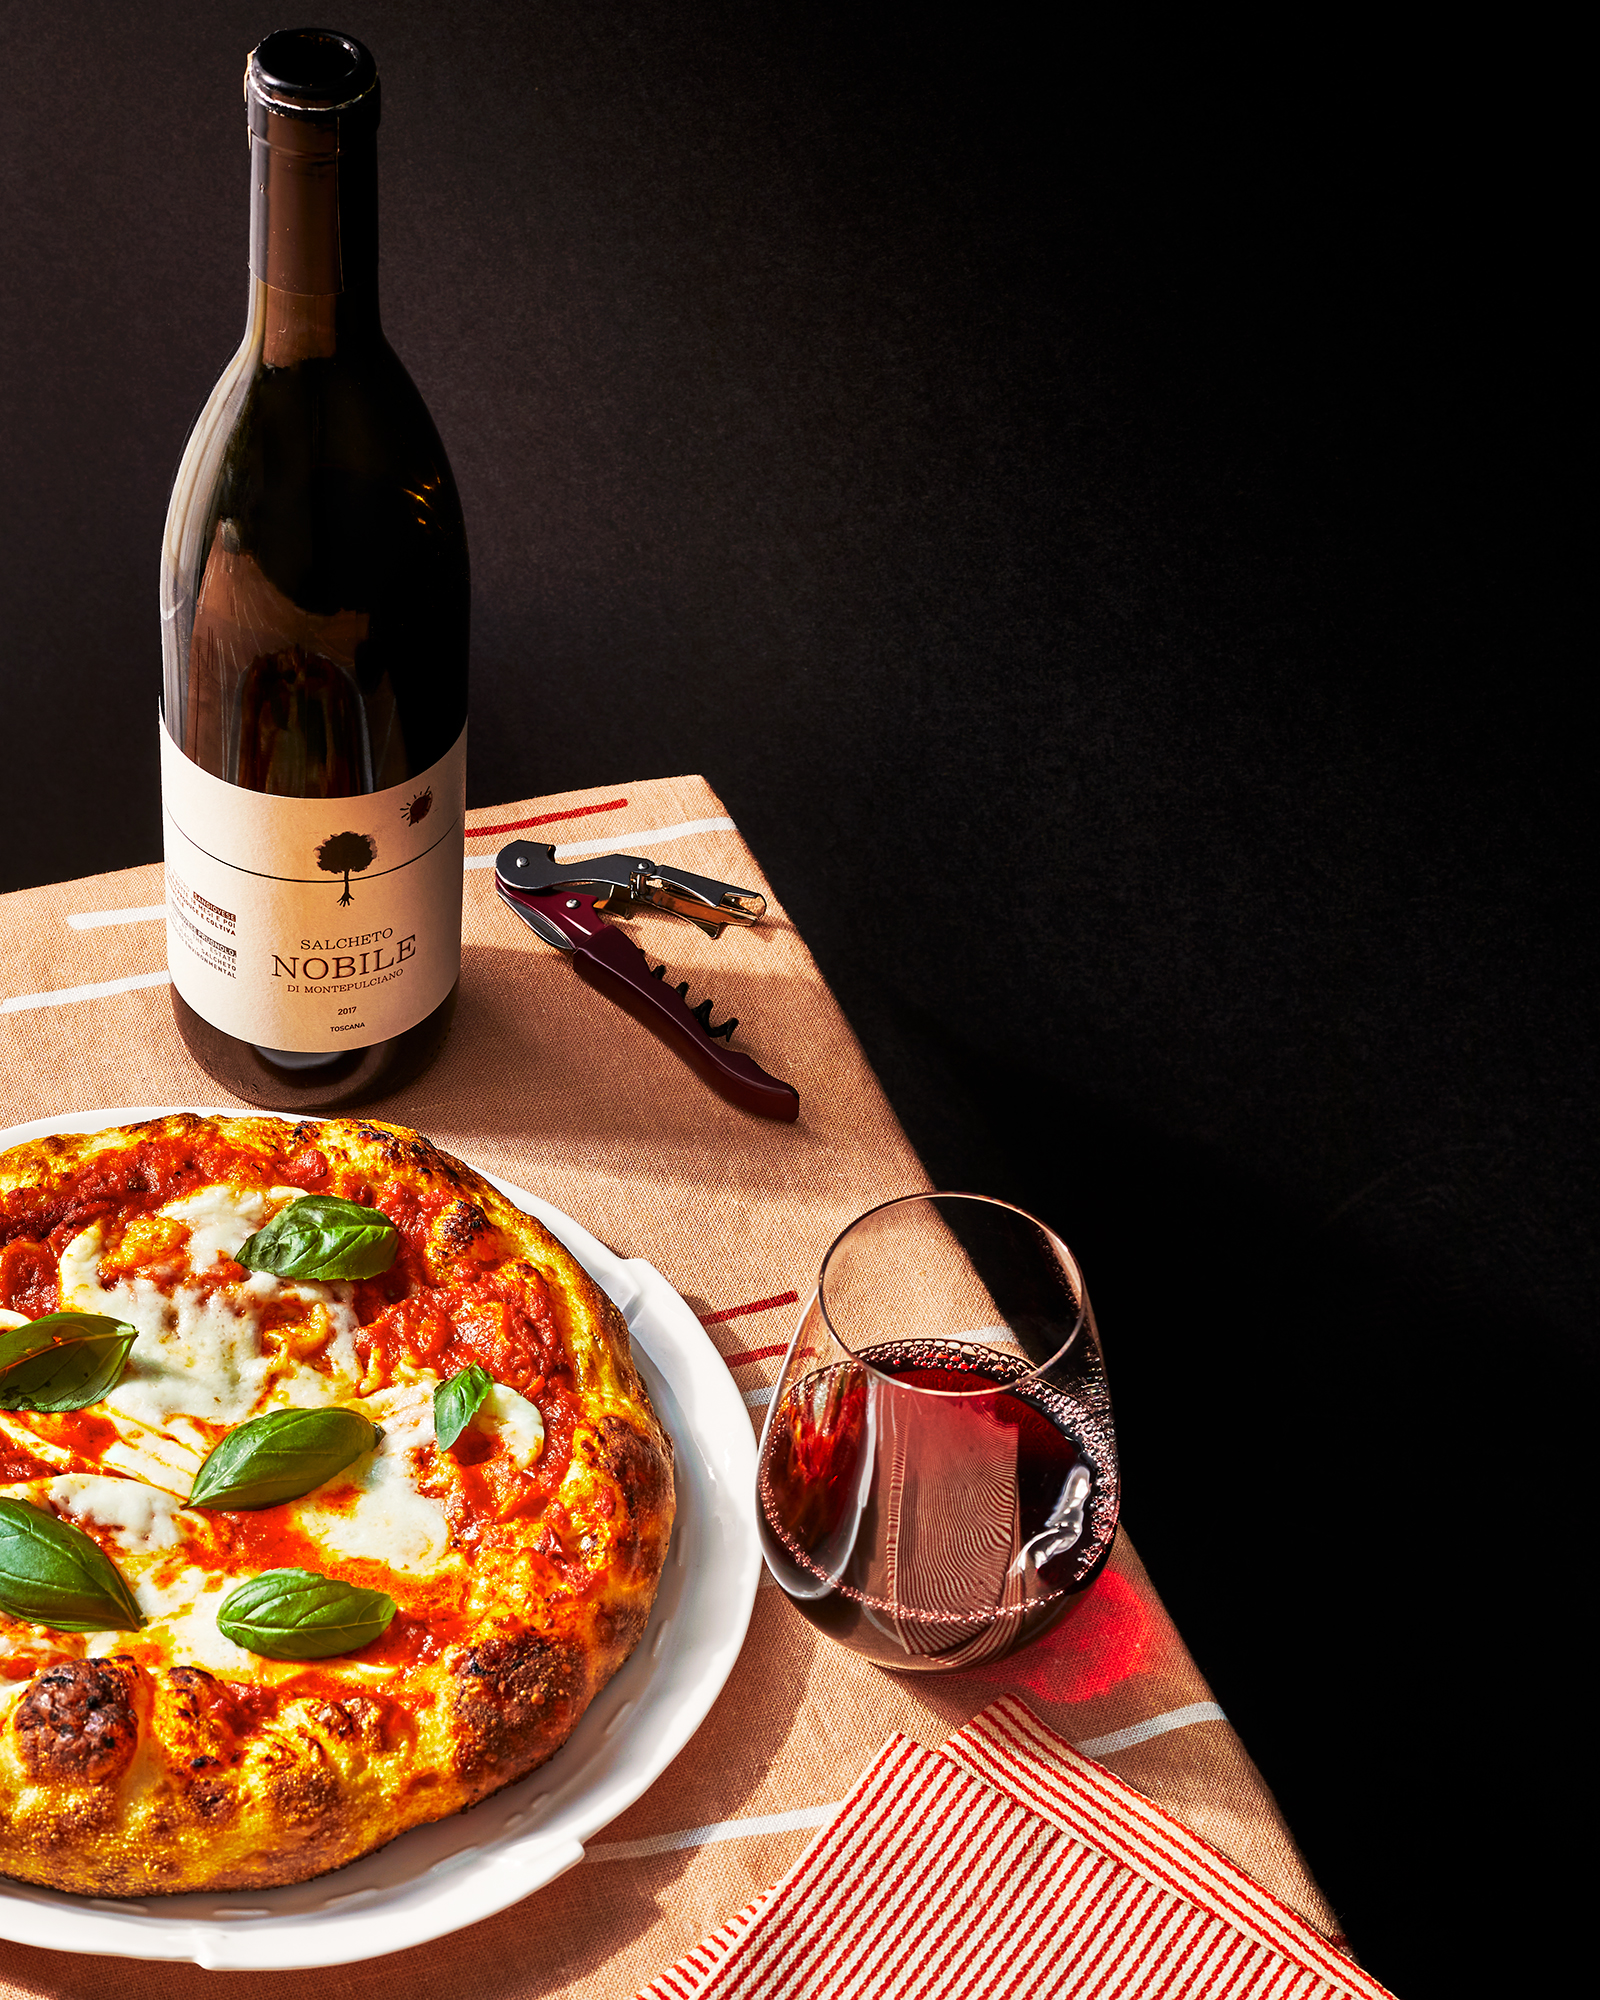 Margherita pizza with red wine